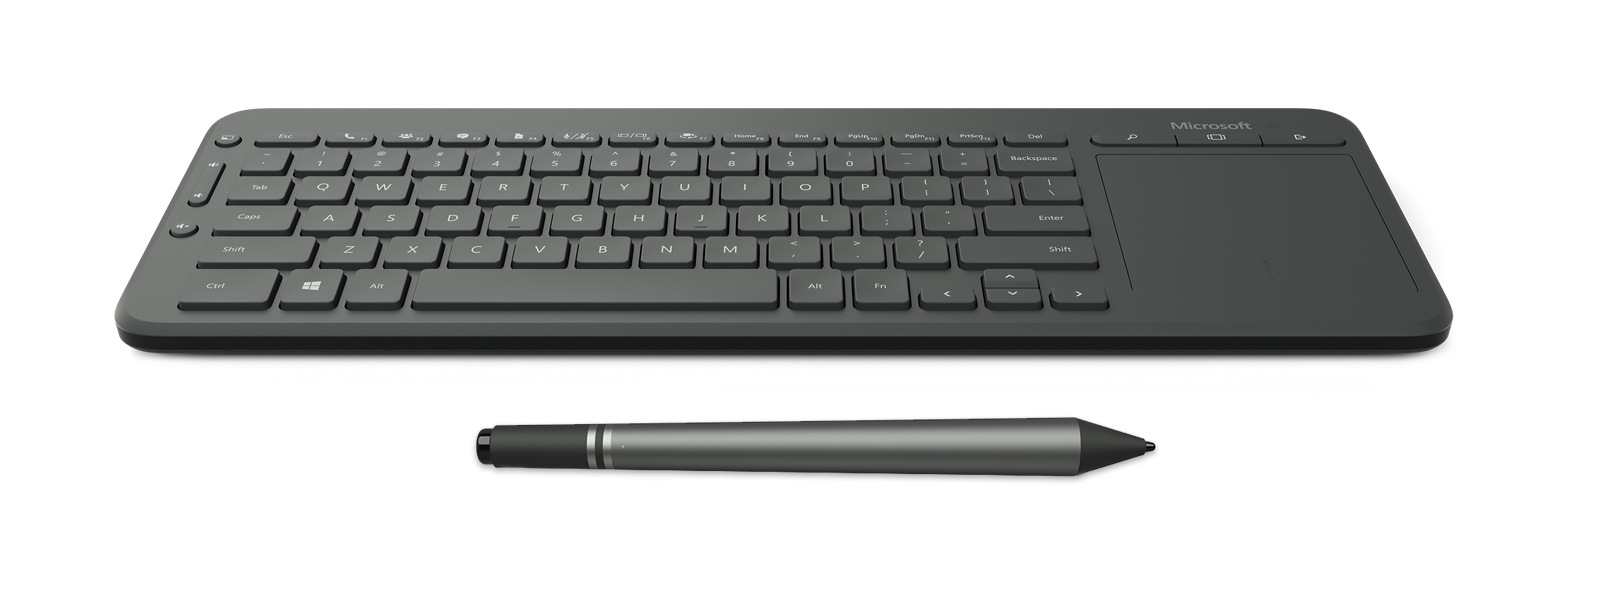 Keyboard and Pen that come included with Surface Hub.